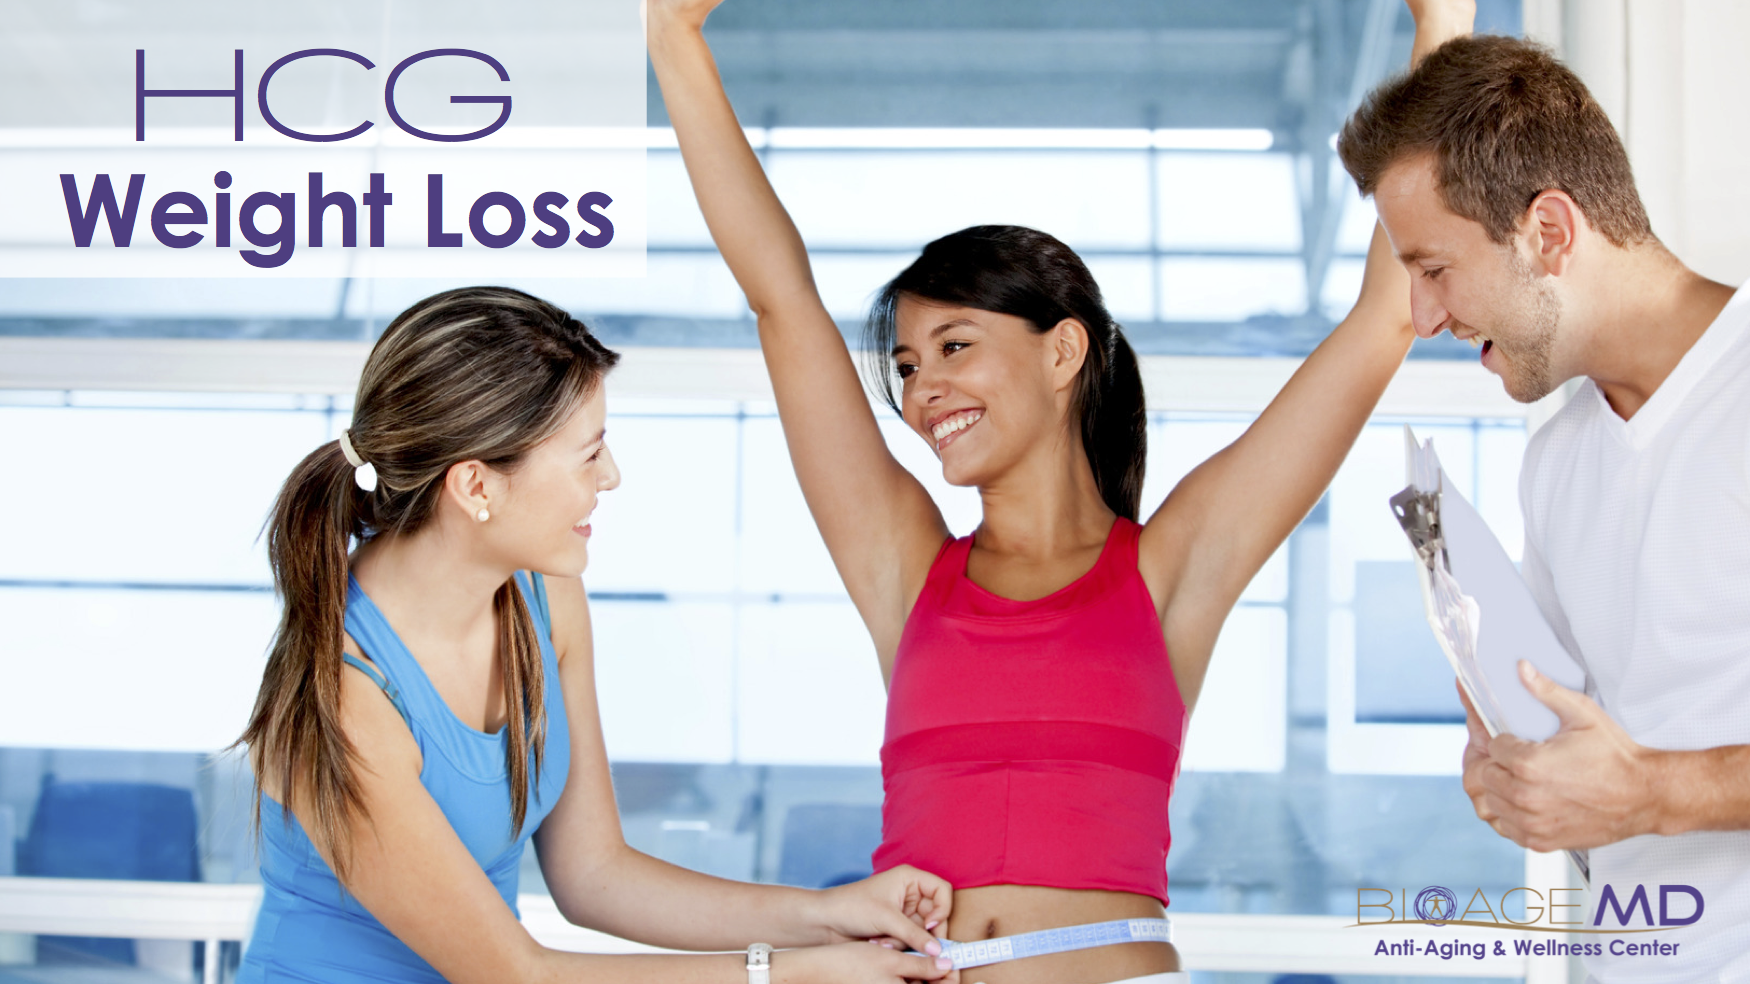 HCG Weight Loss in West Palm Beach